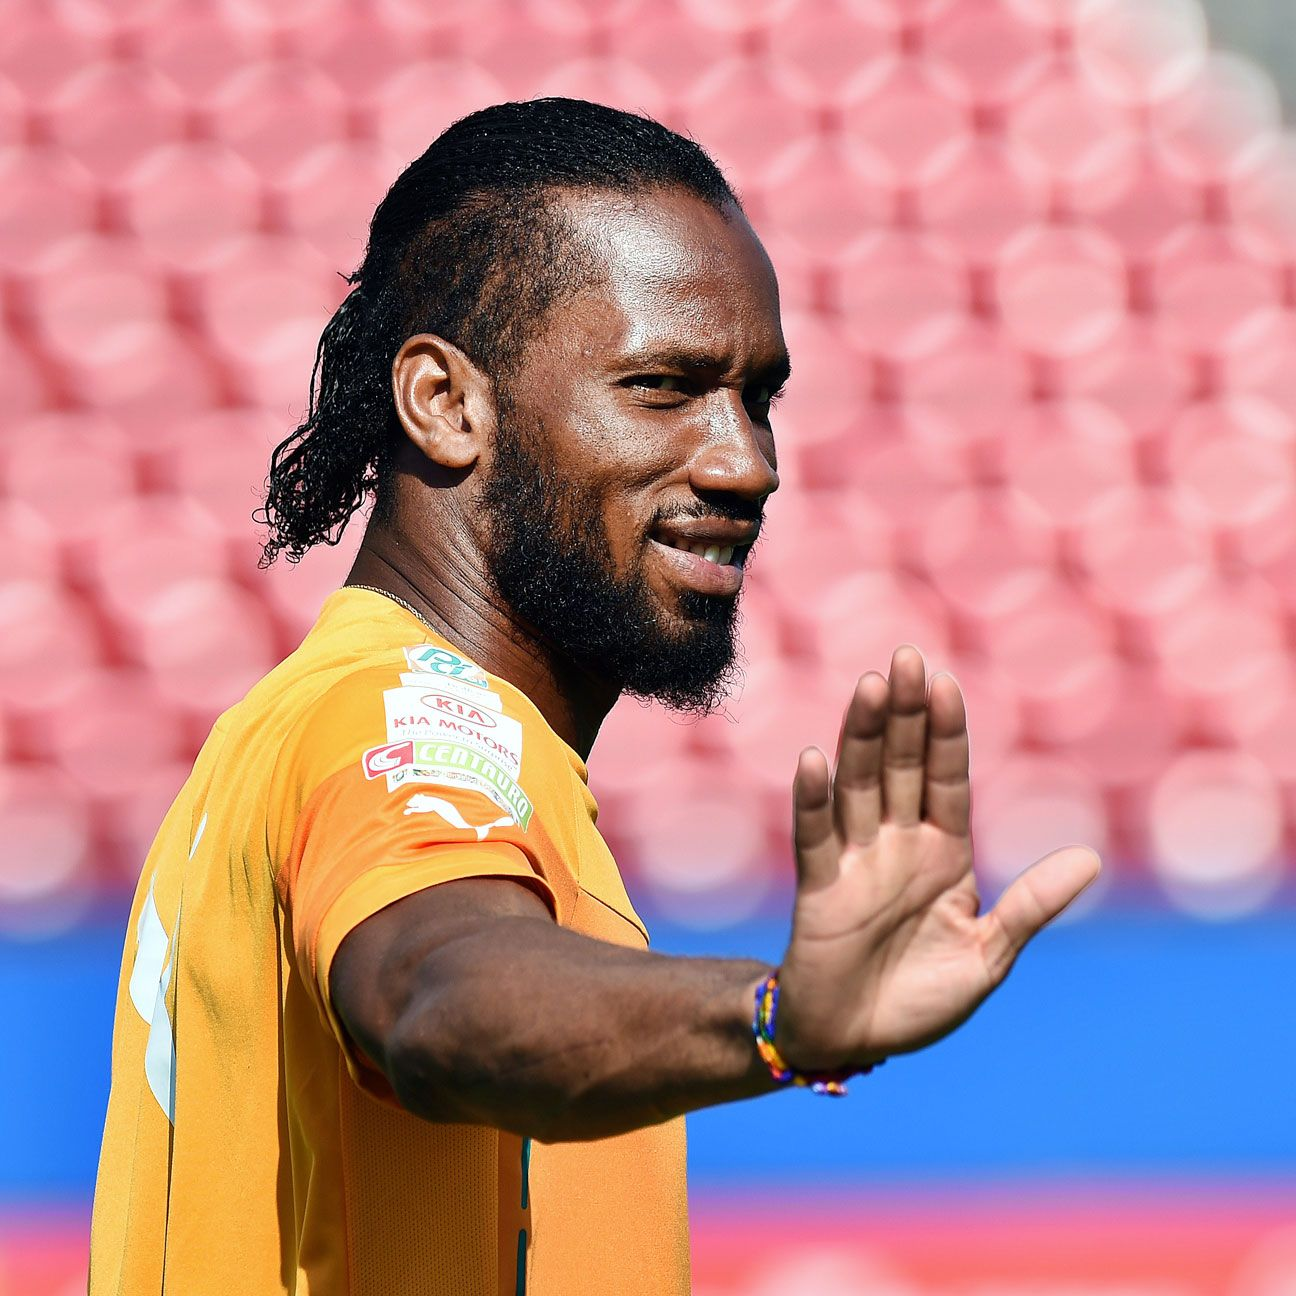 Didier Drogba isn't the player he used to be, but he should still be able to push the Ivory Coast out of its group.